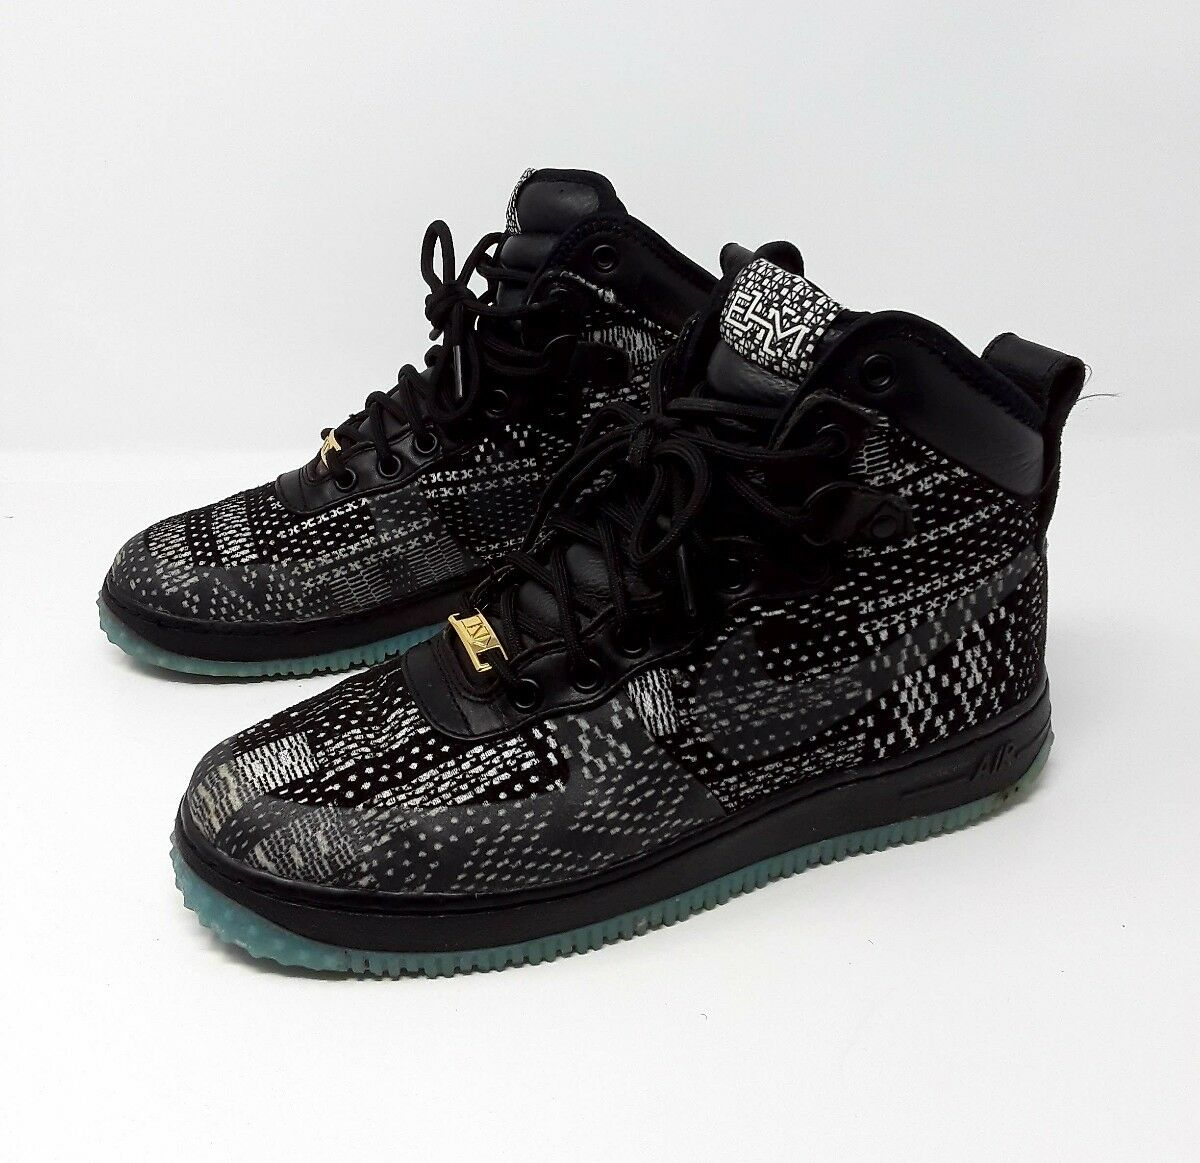 best website be548 1c17e Nike Air Force 1 Duckboot BHM BHM BHM QS Black White-Metallic Gold Men s